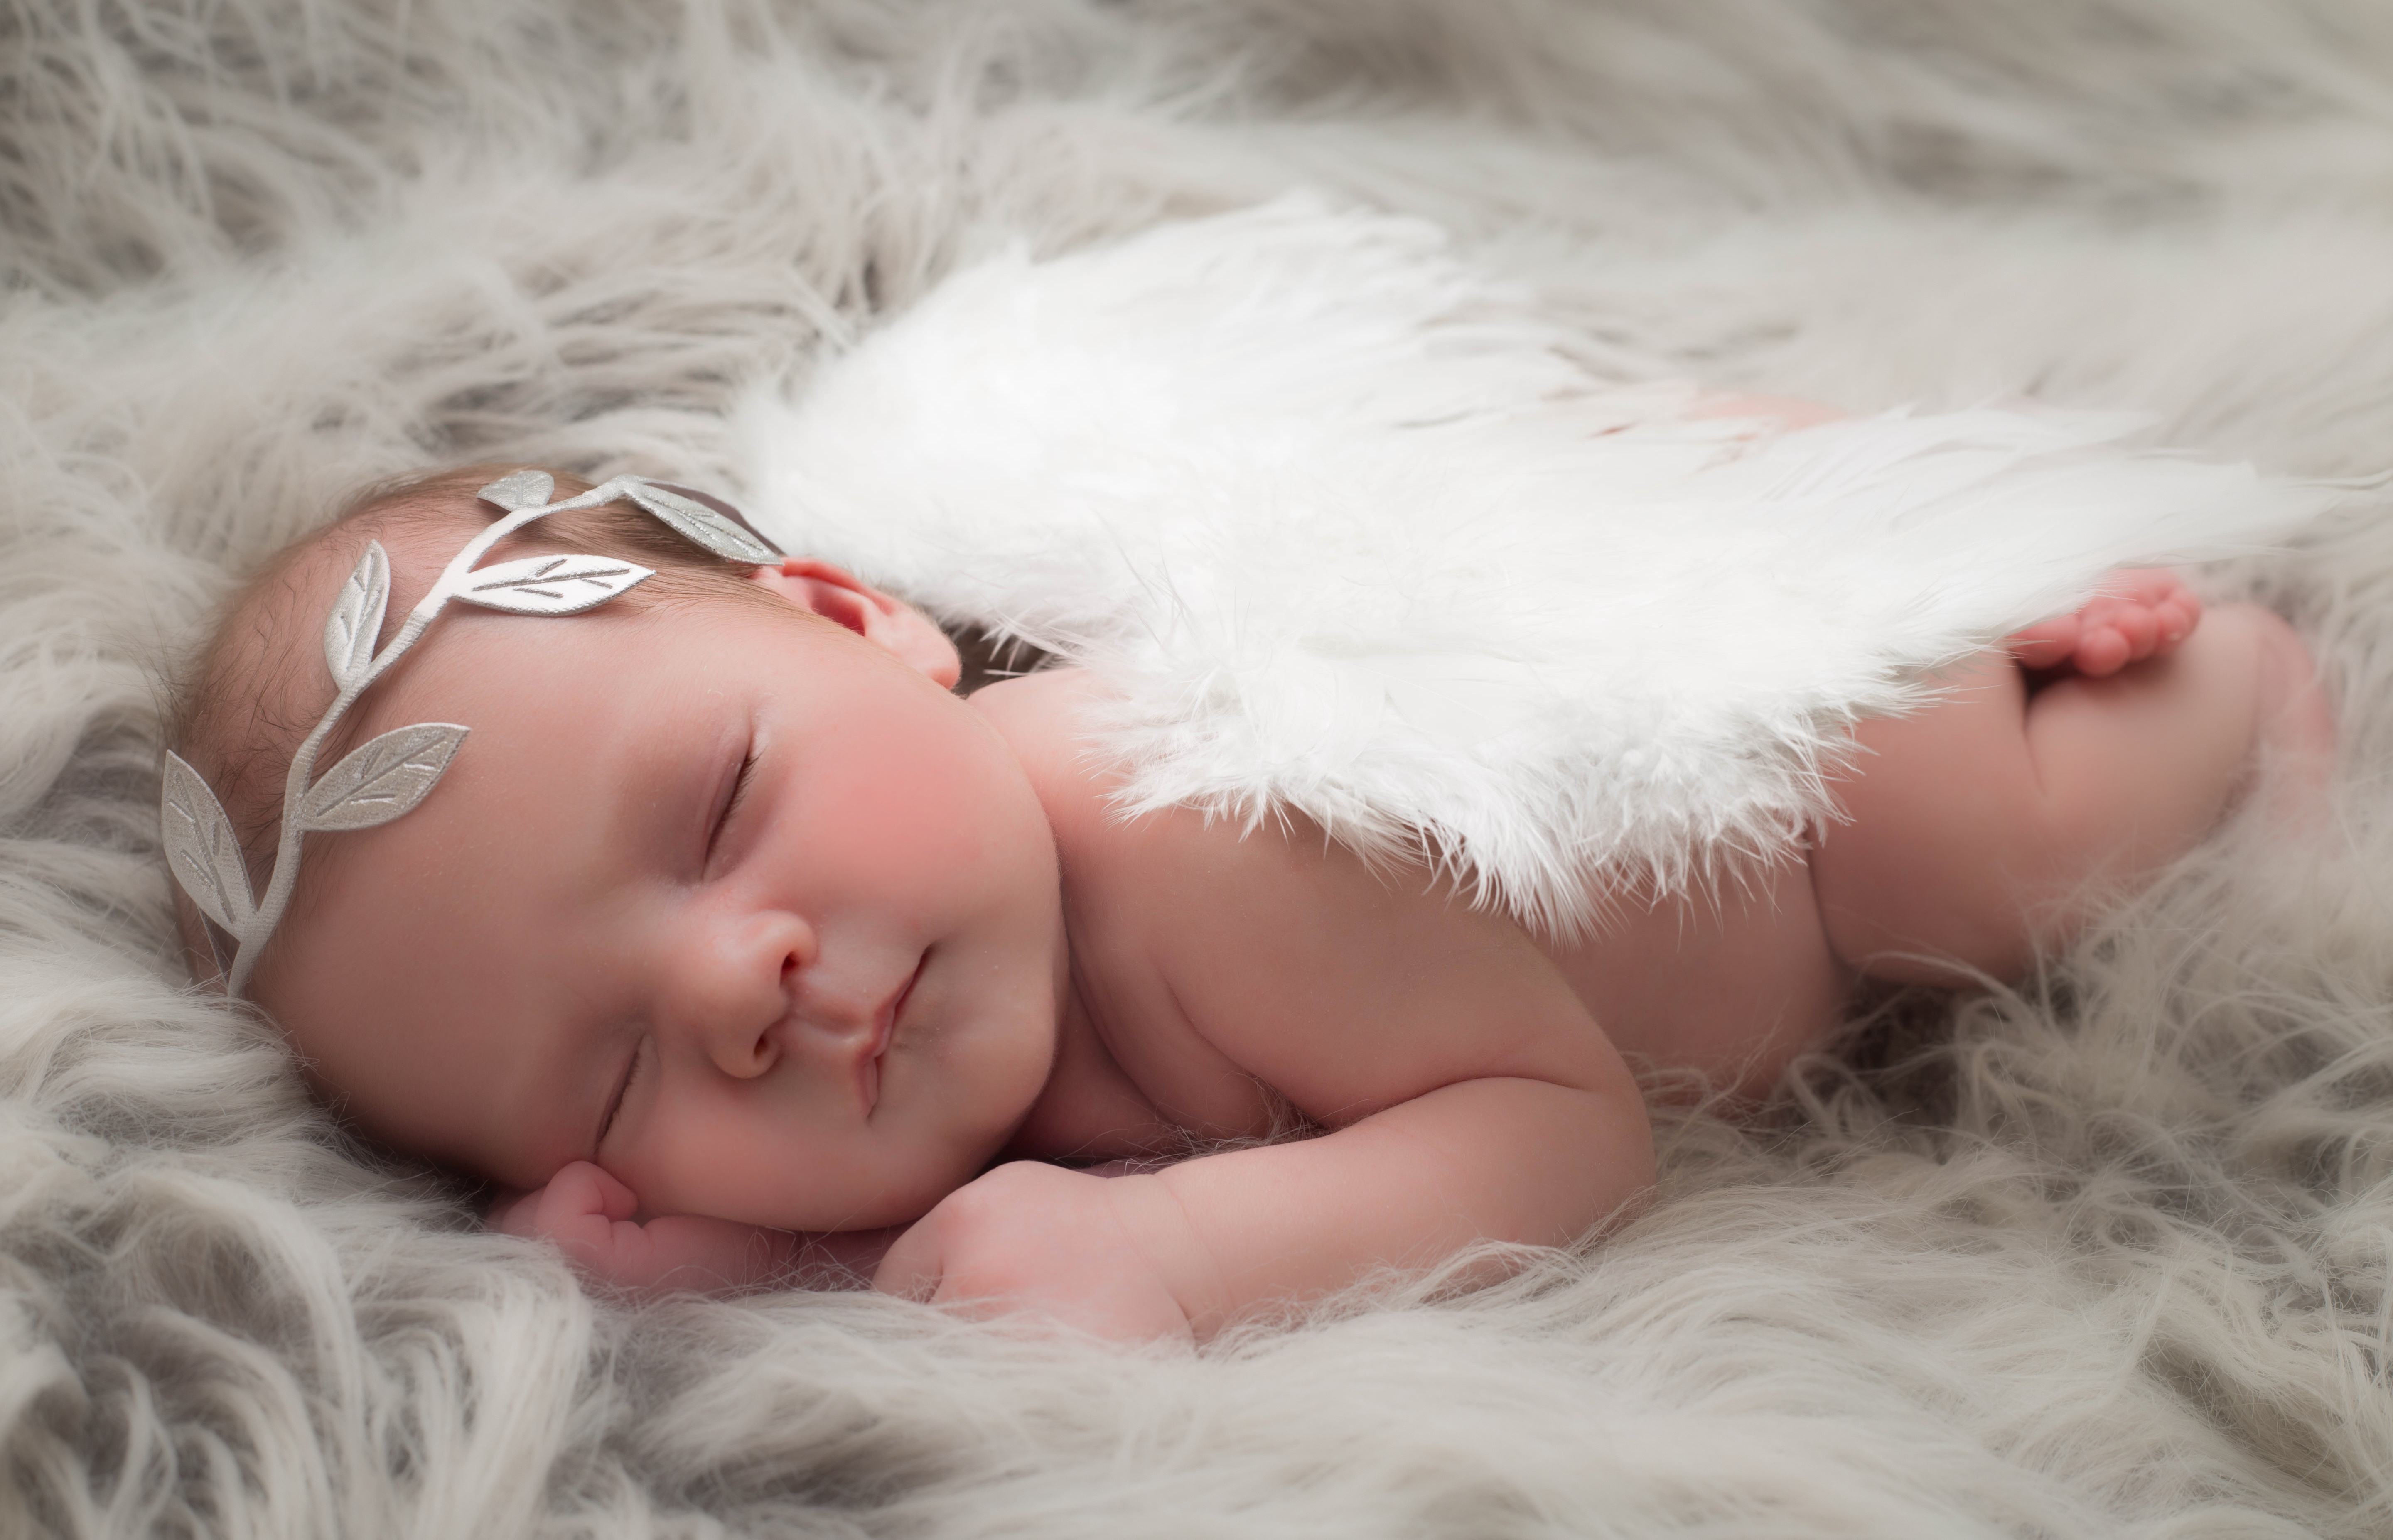 Cute Baby Girl Wallpapers For Facebook Cover Baby Angel 5k Retina Ultra Hd Wallpaper Background Image